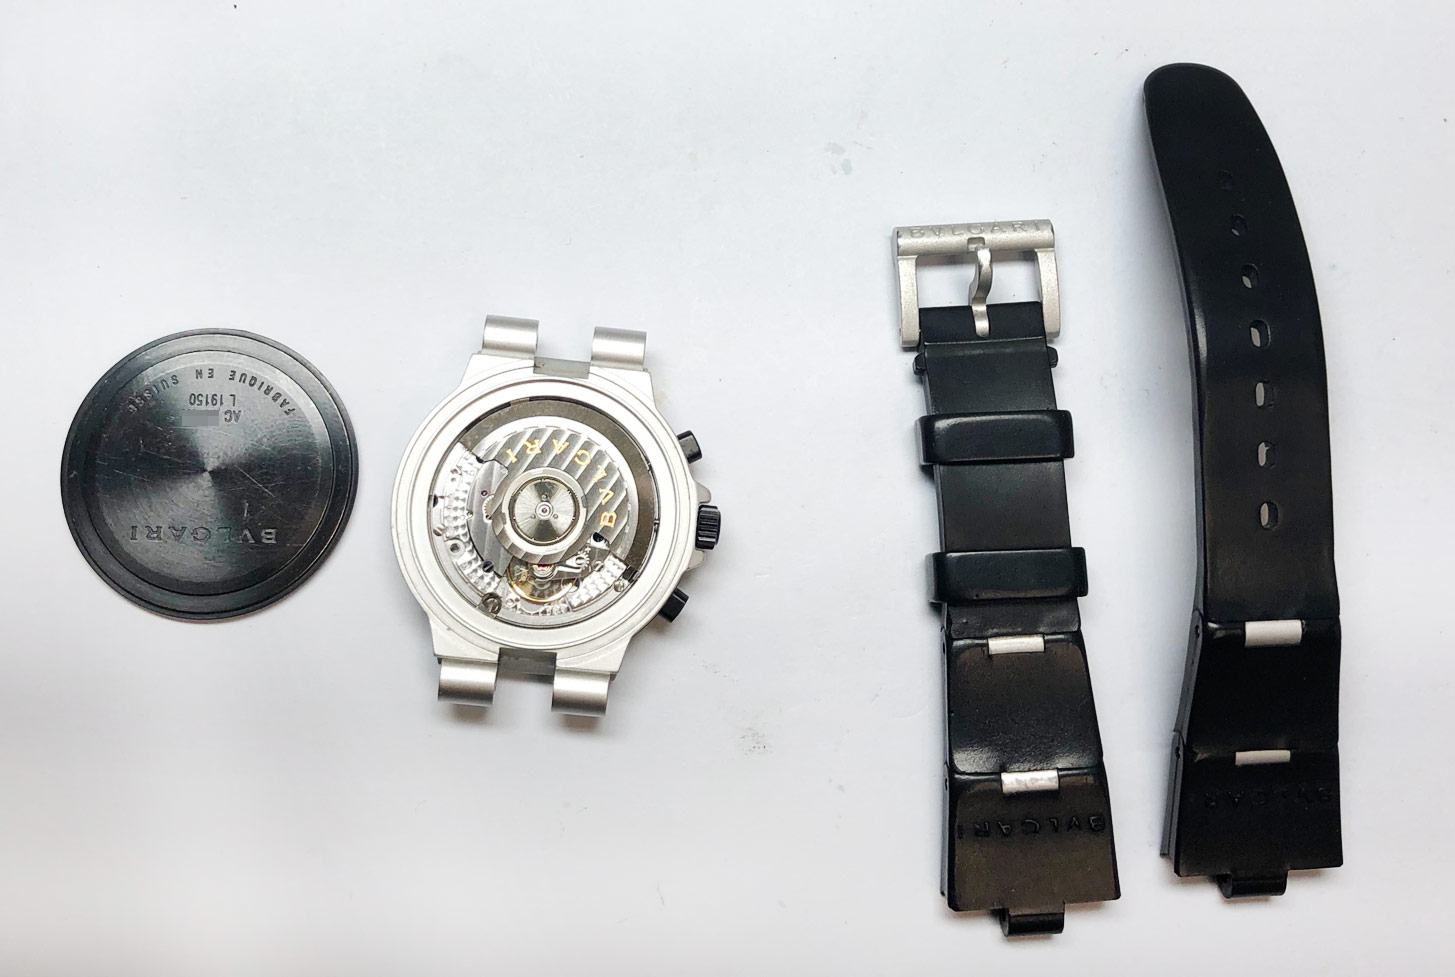 Bvlgari Watch Repair